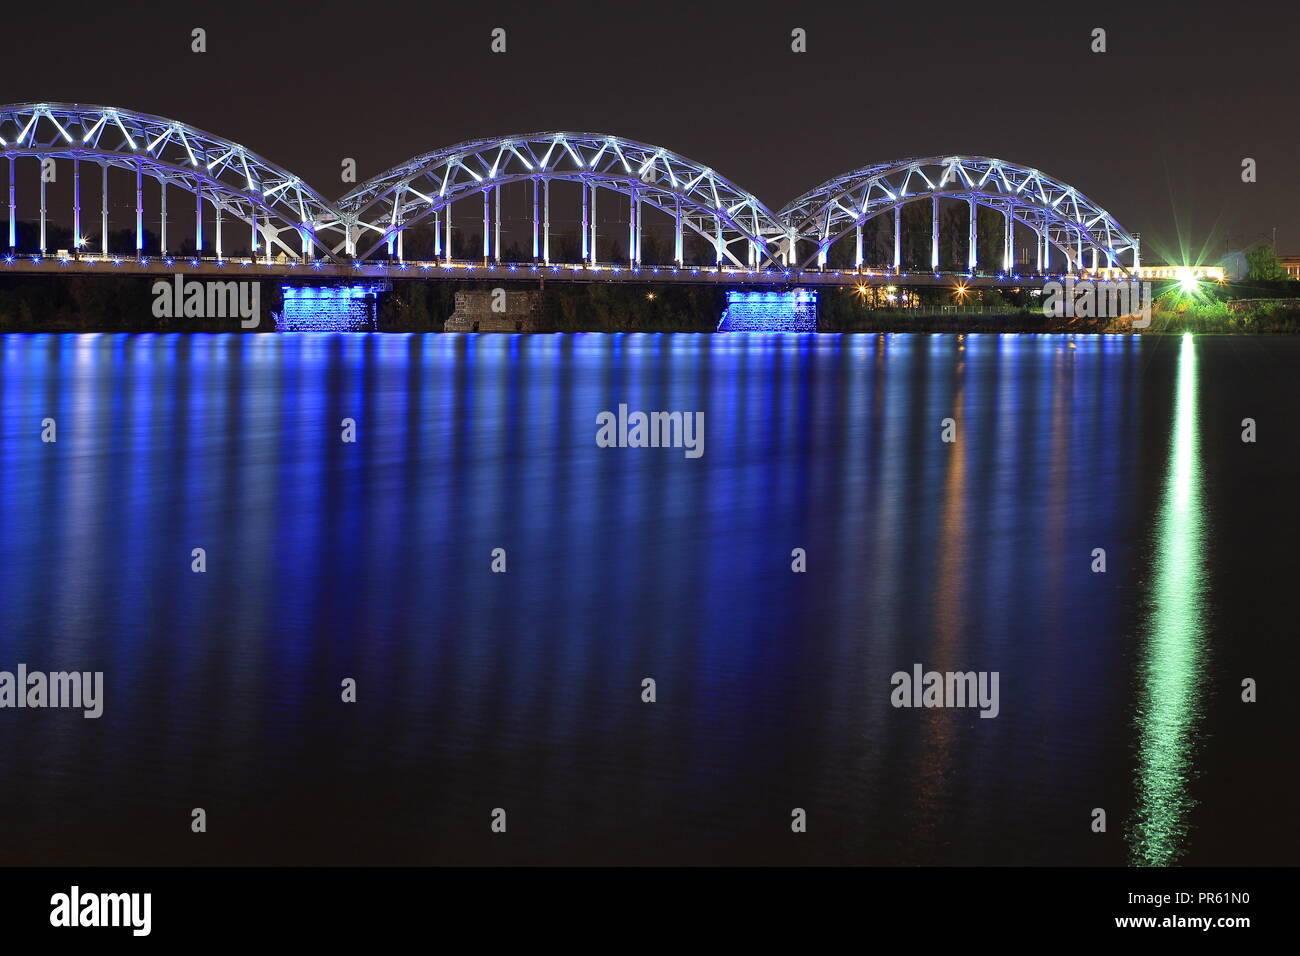 Railway Bridge crosses the Daugava river in Riga ( Latvia ) at night. Latvians celebrates its 100 years of independence throughout the year 2018. - Stock Image